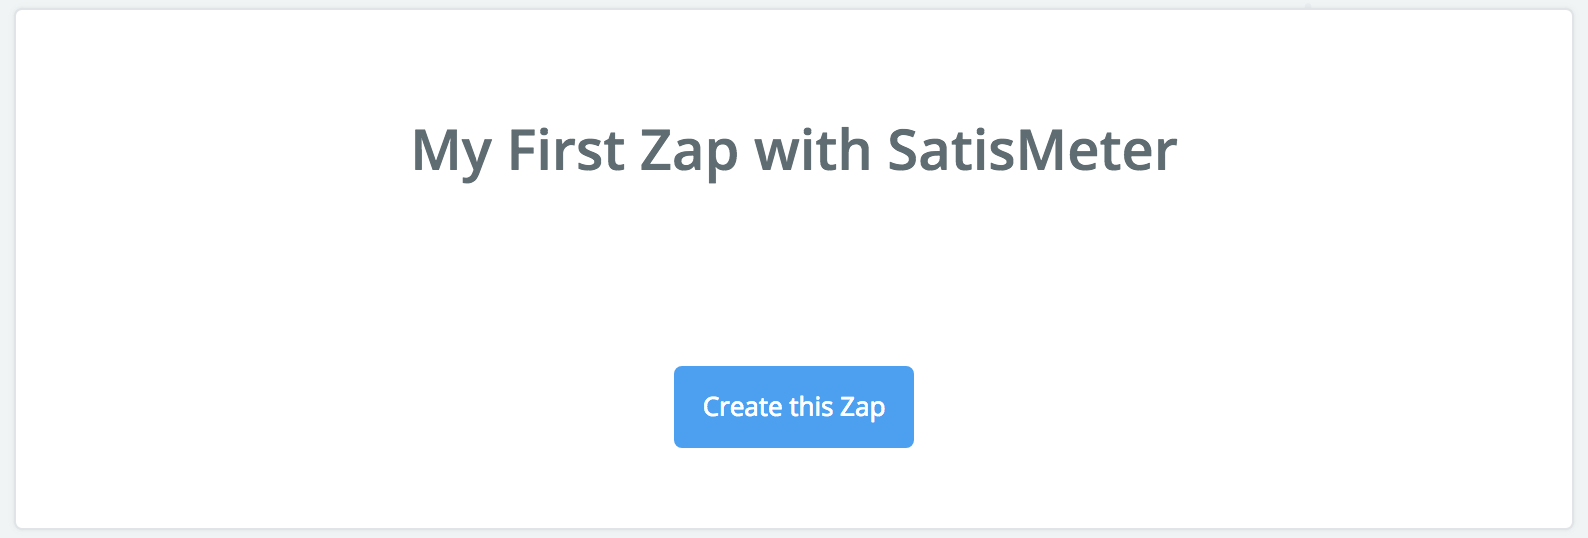 My first Zap with SatisMeter